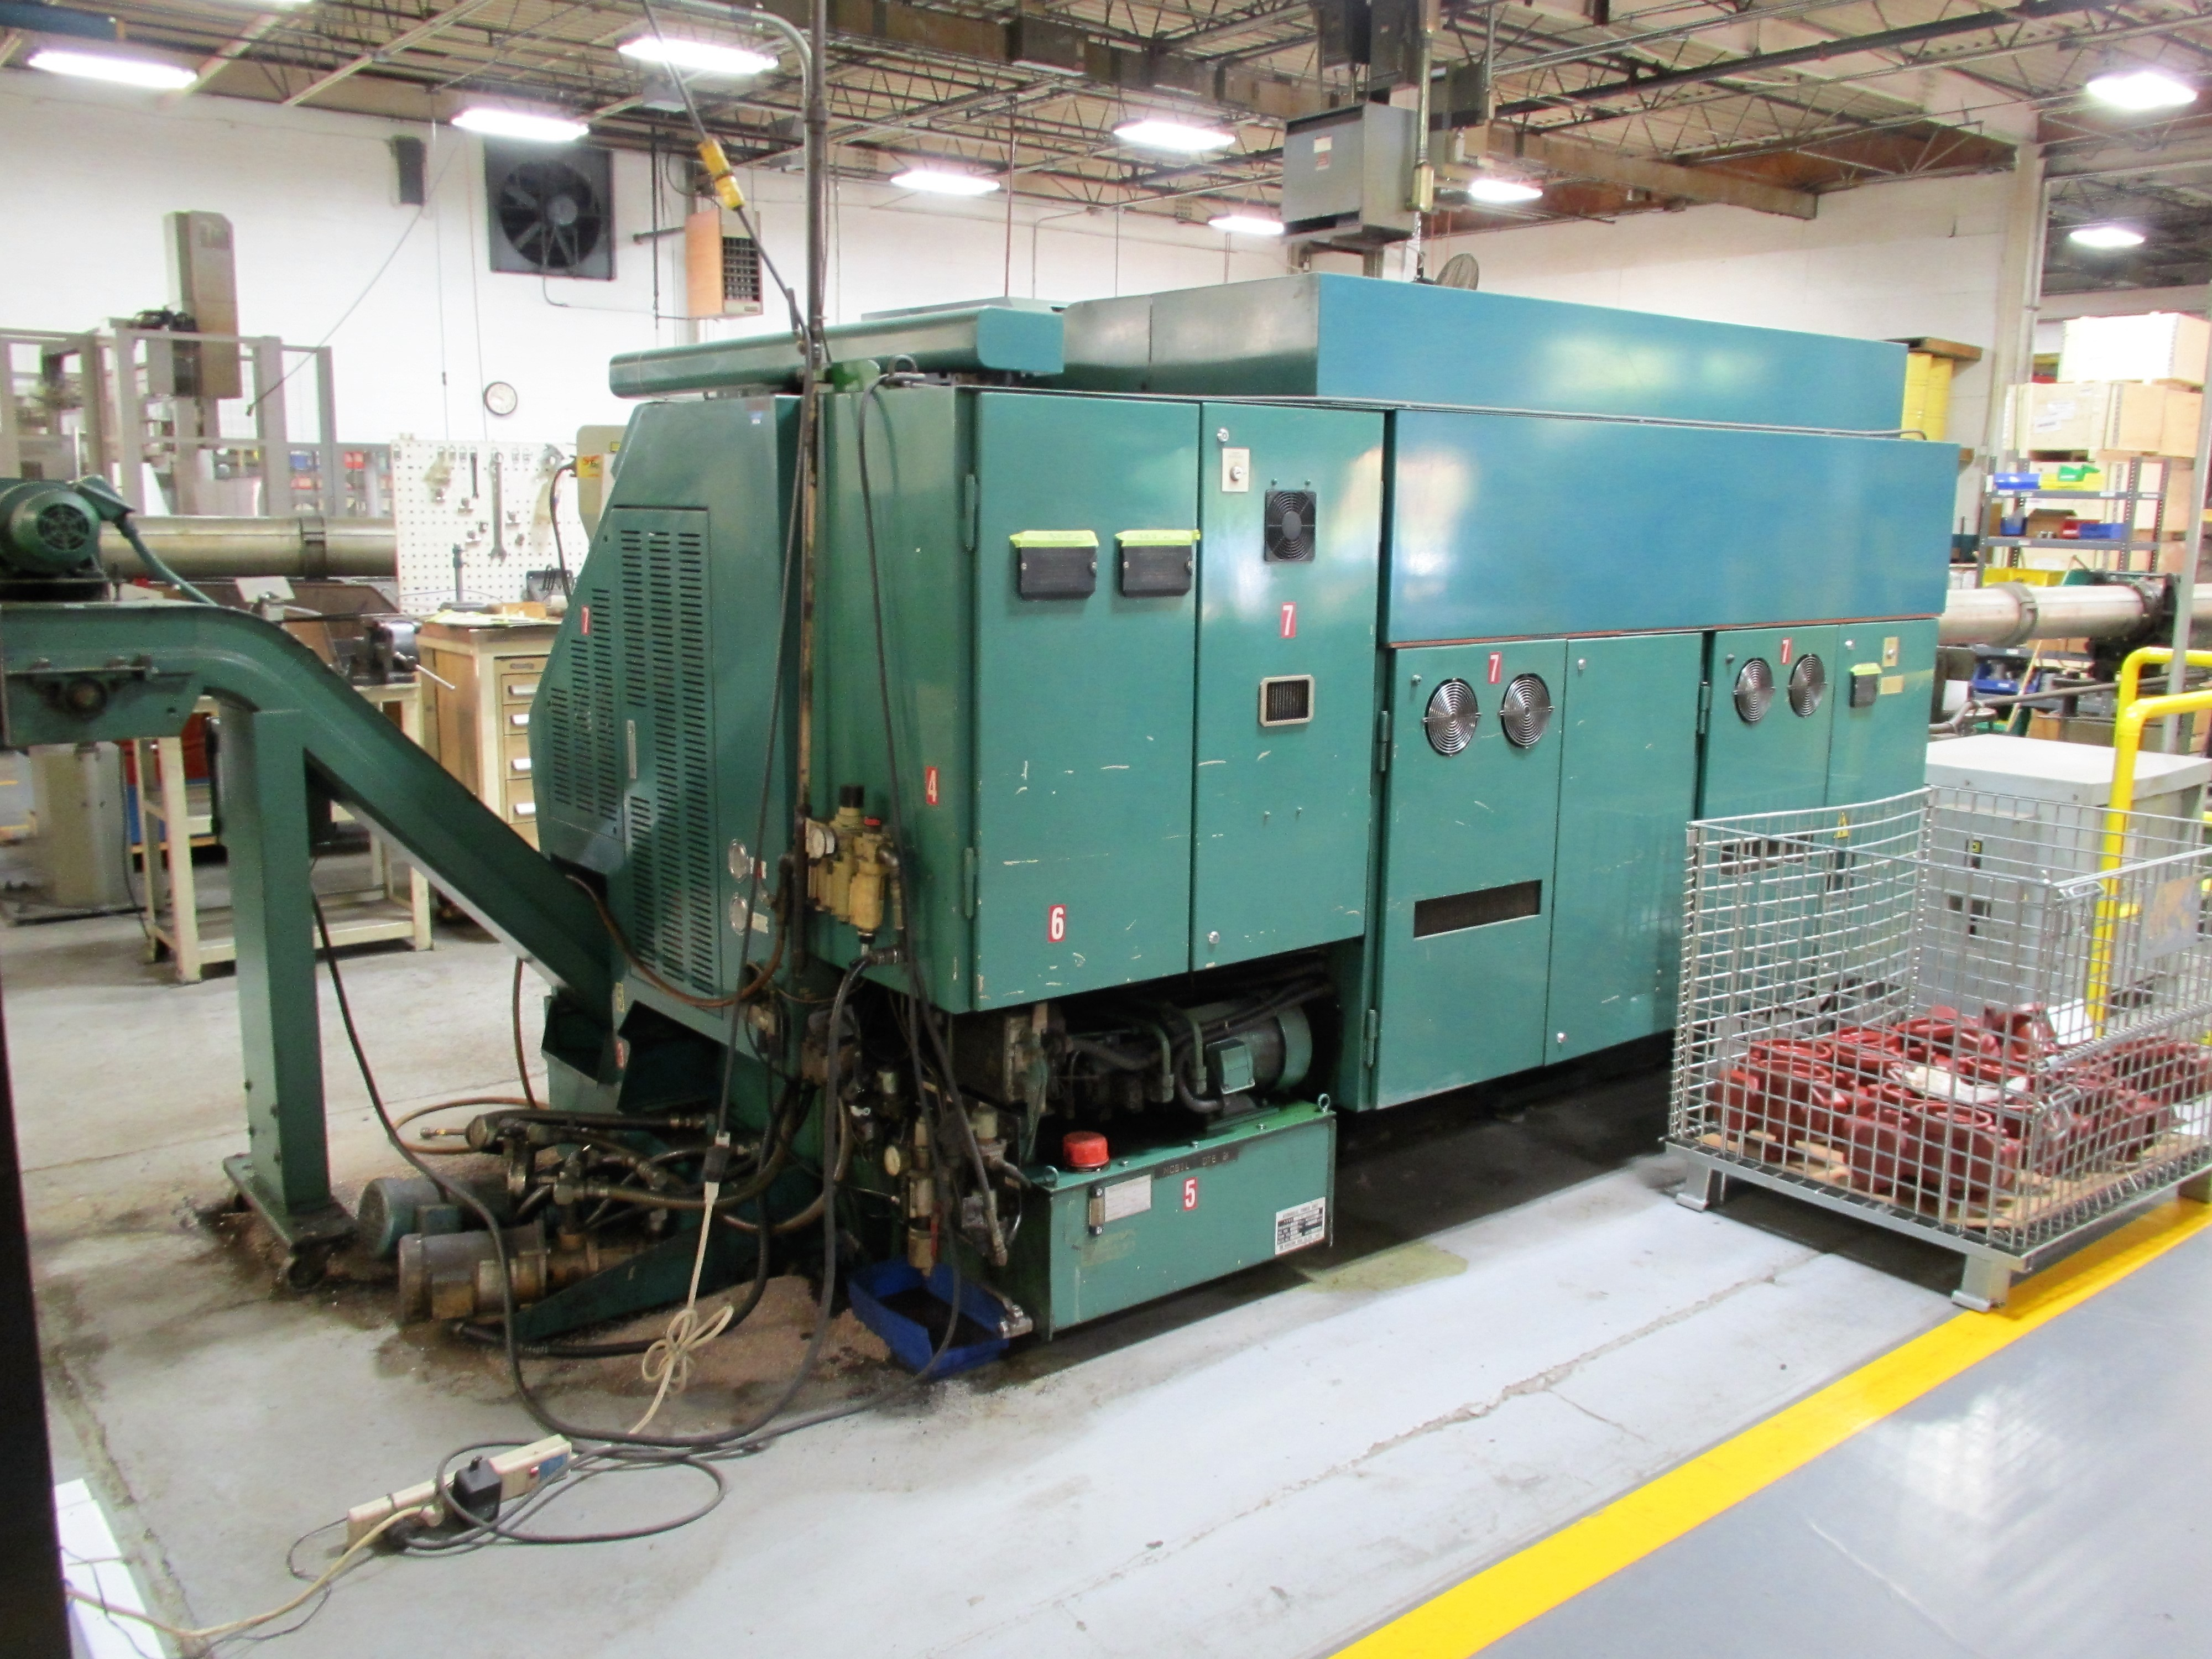 NAKAMURA TOME TW-20 6-AXIS CNC TWIN SPINDLE TURNING CENTER - Image 8 of 17